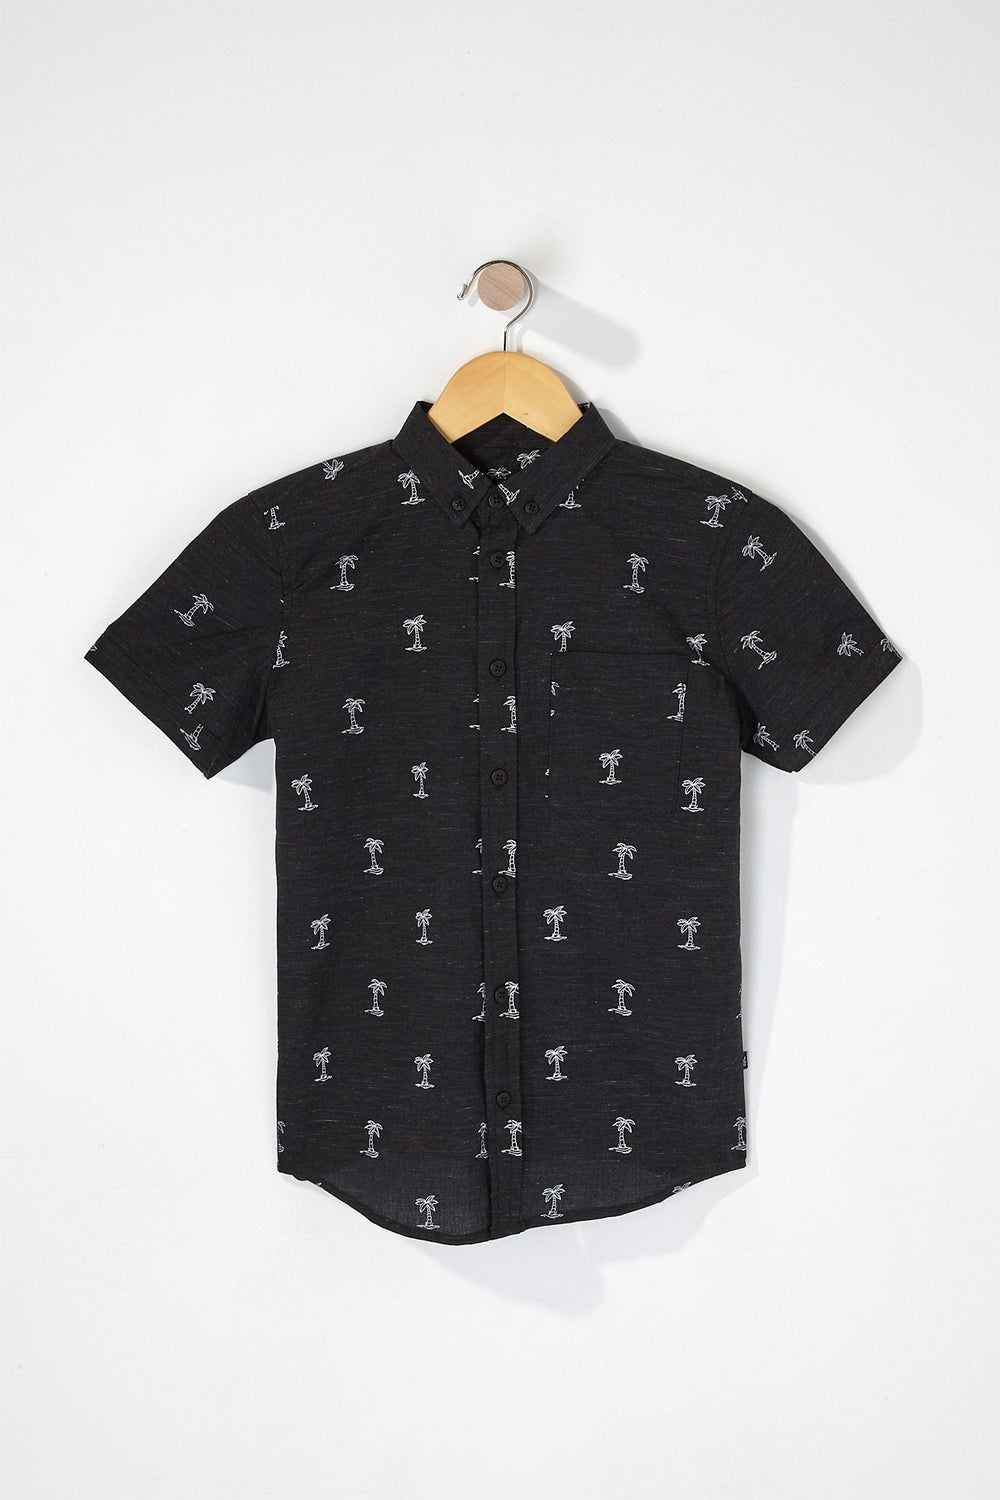 West49 Boys Palm Tree Button-Up Shirt Black